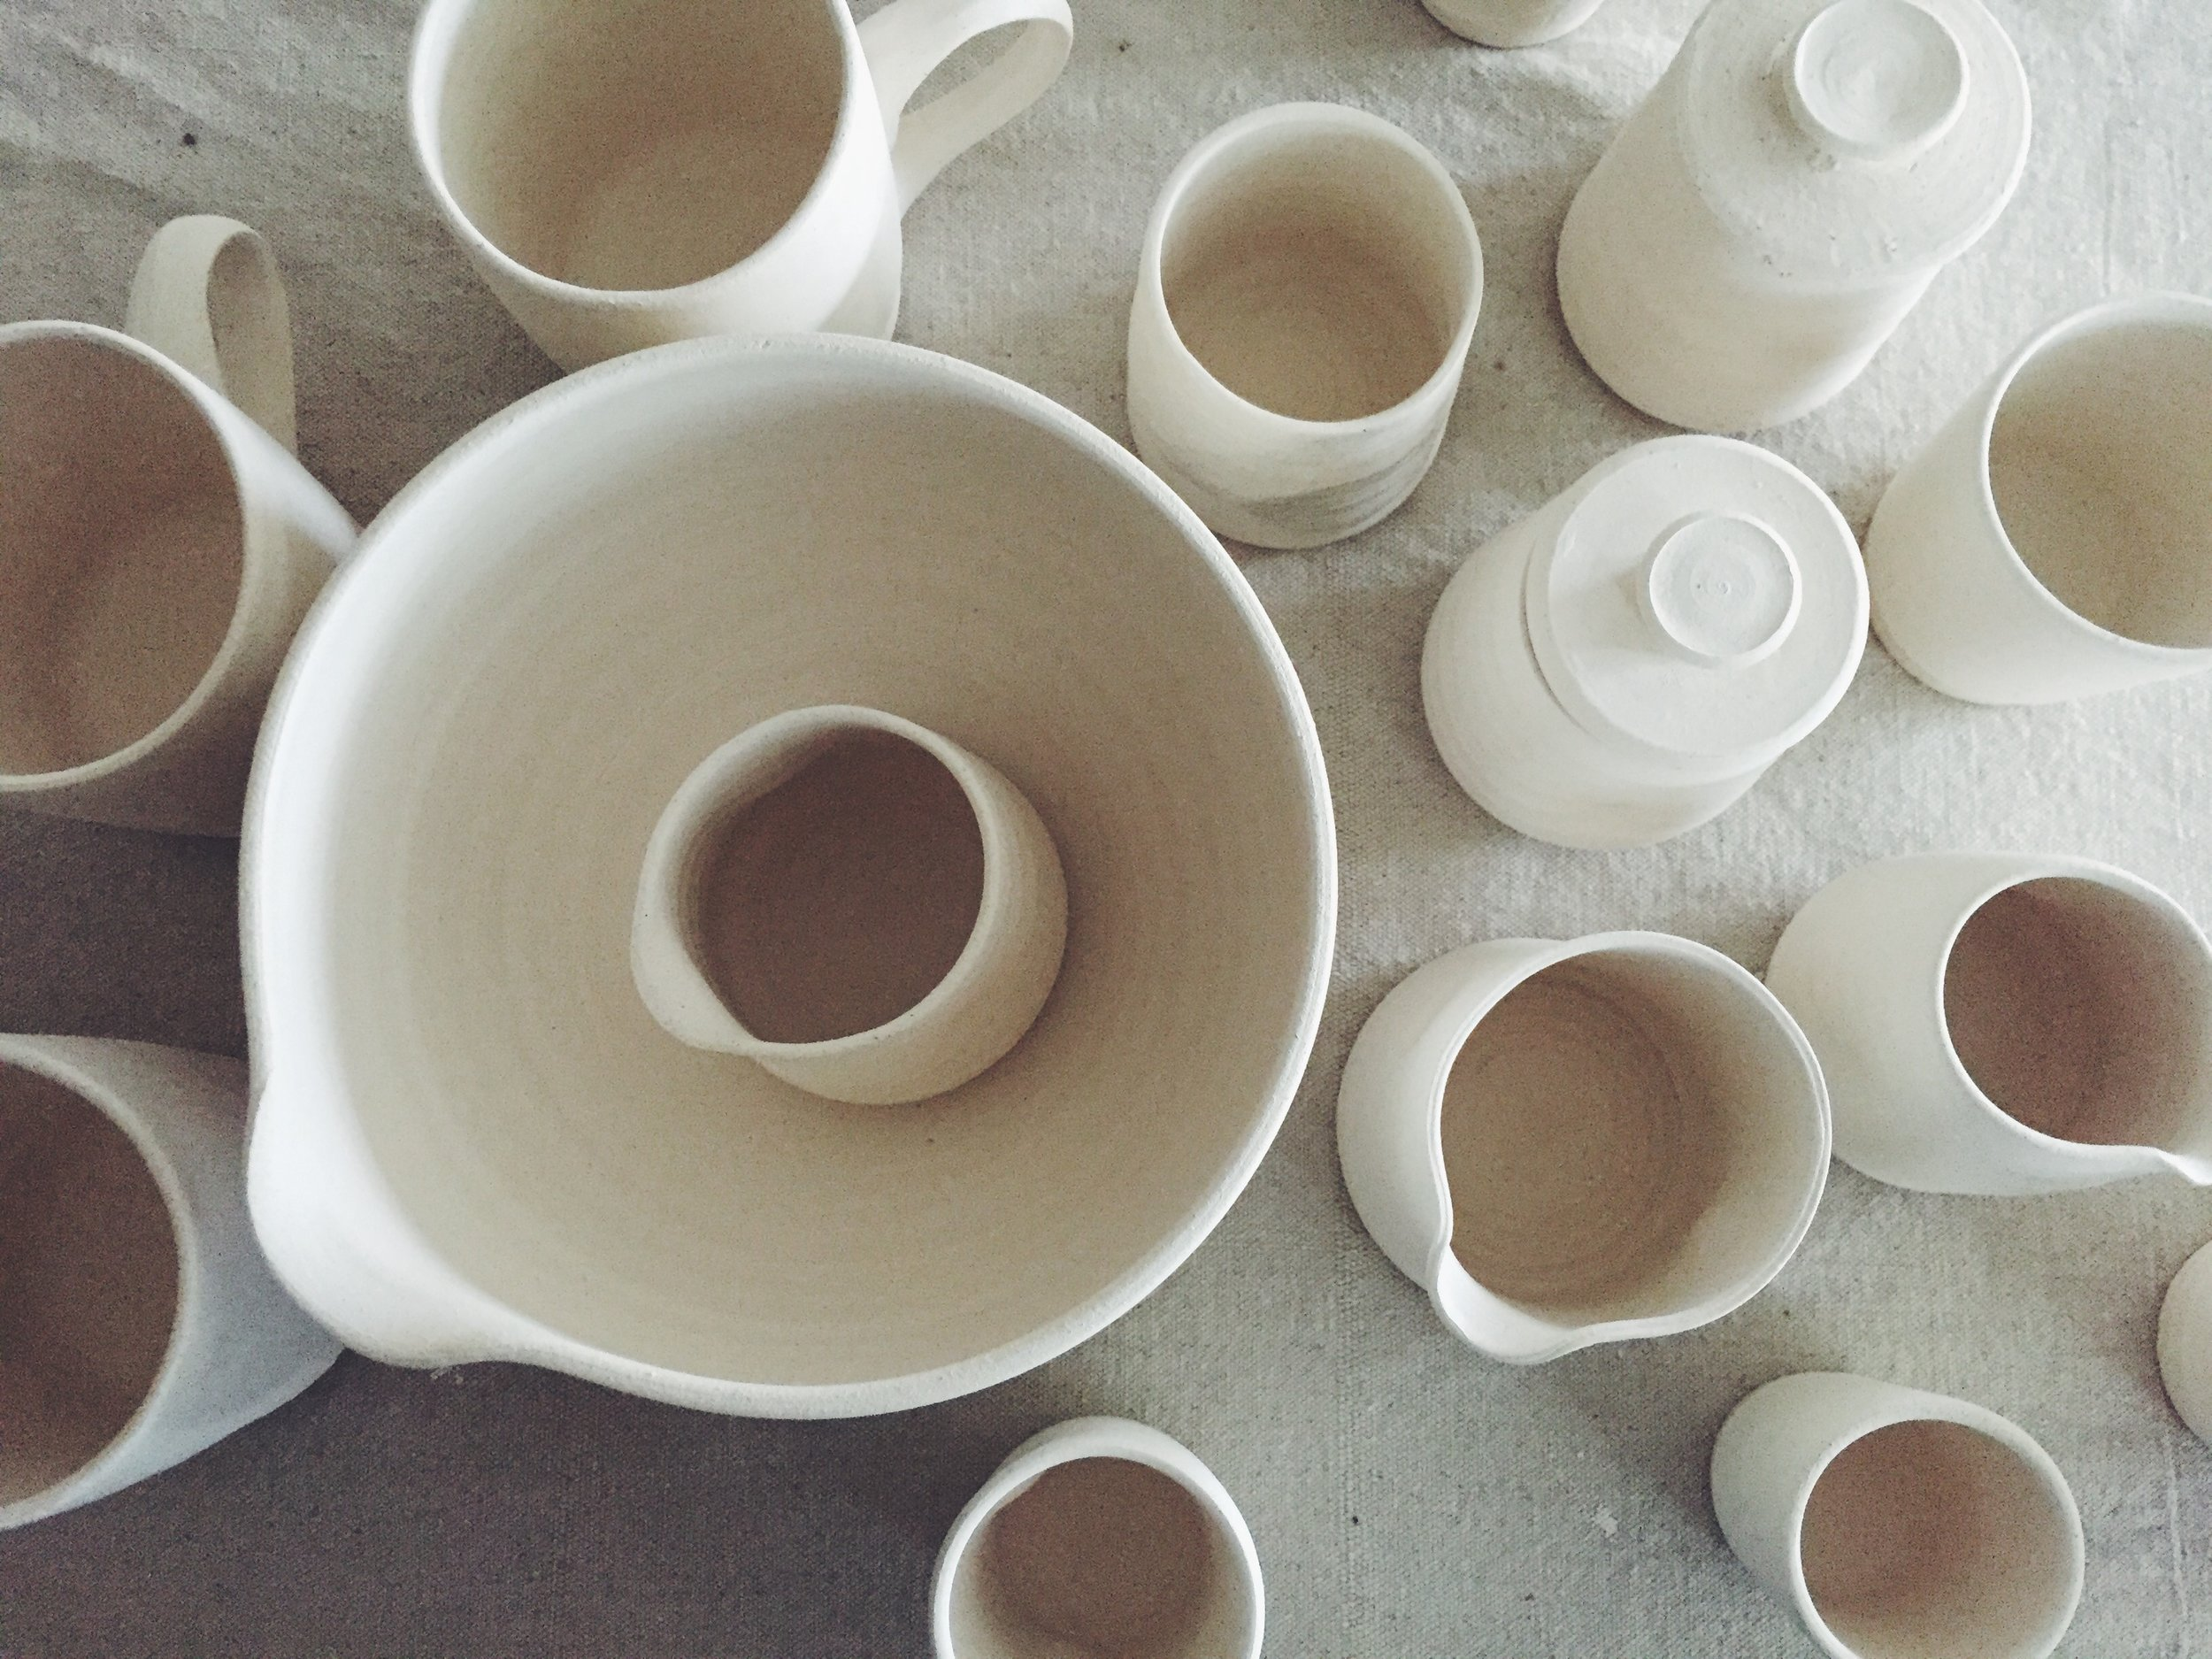 Bisqueware needing glaze